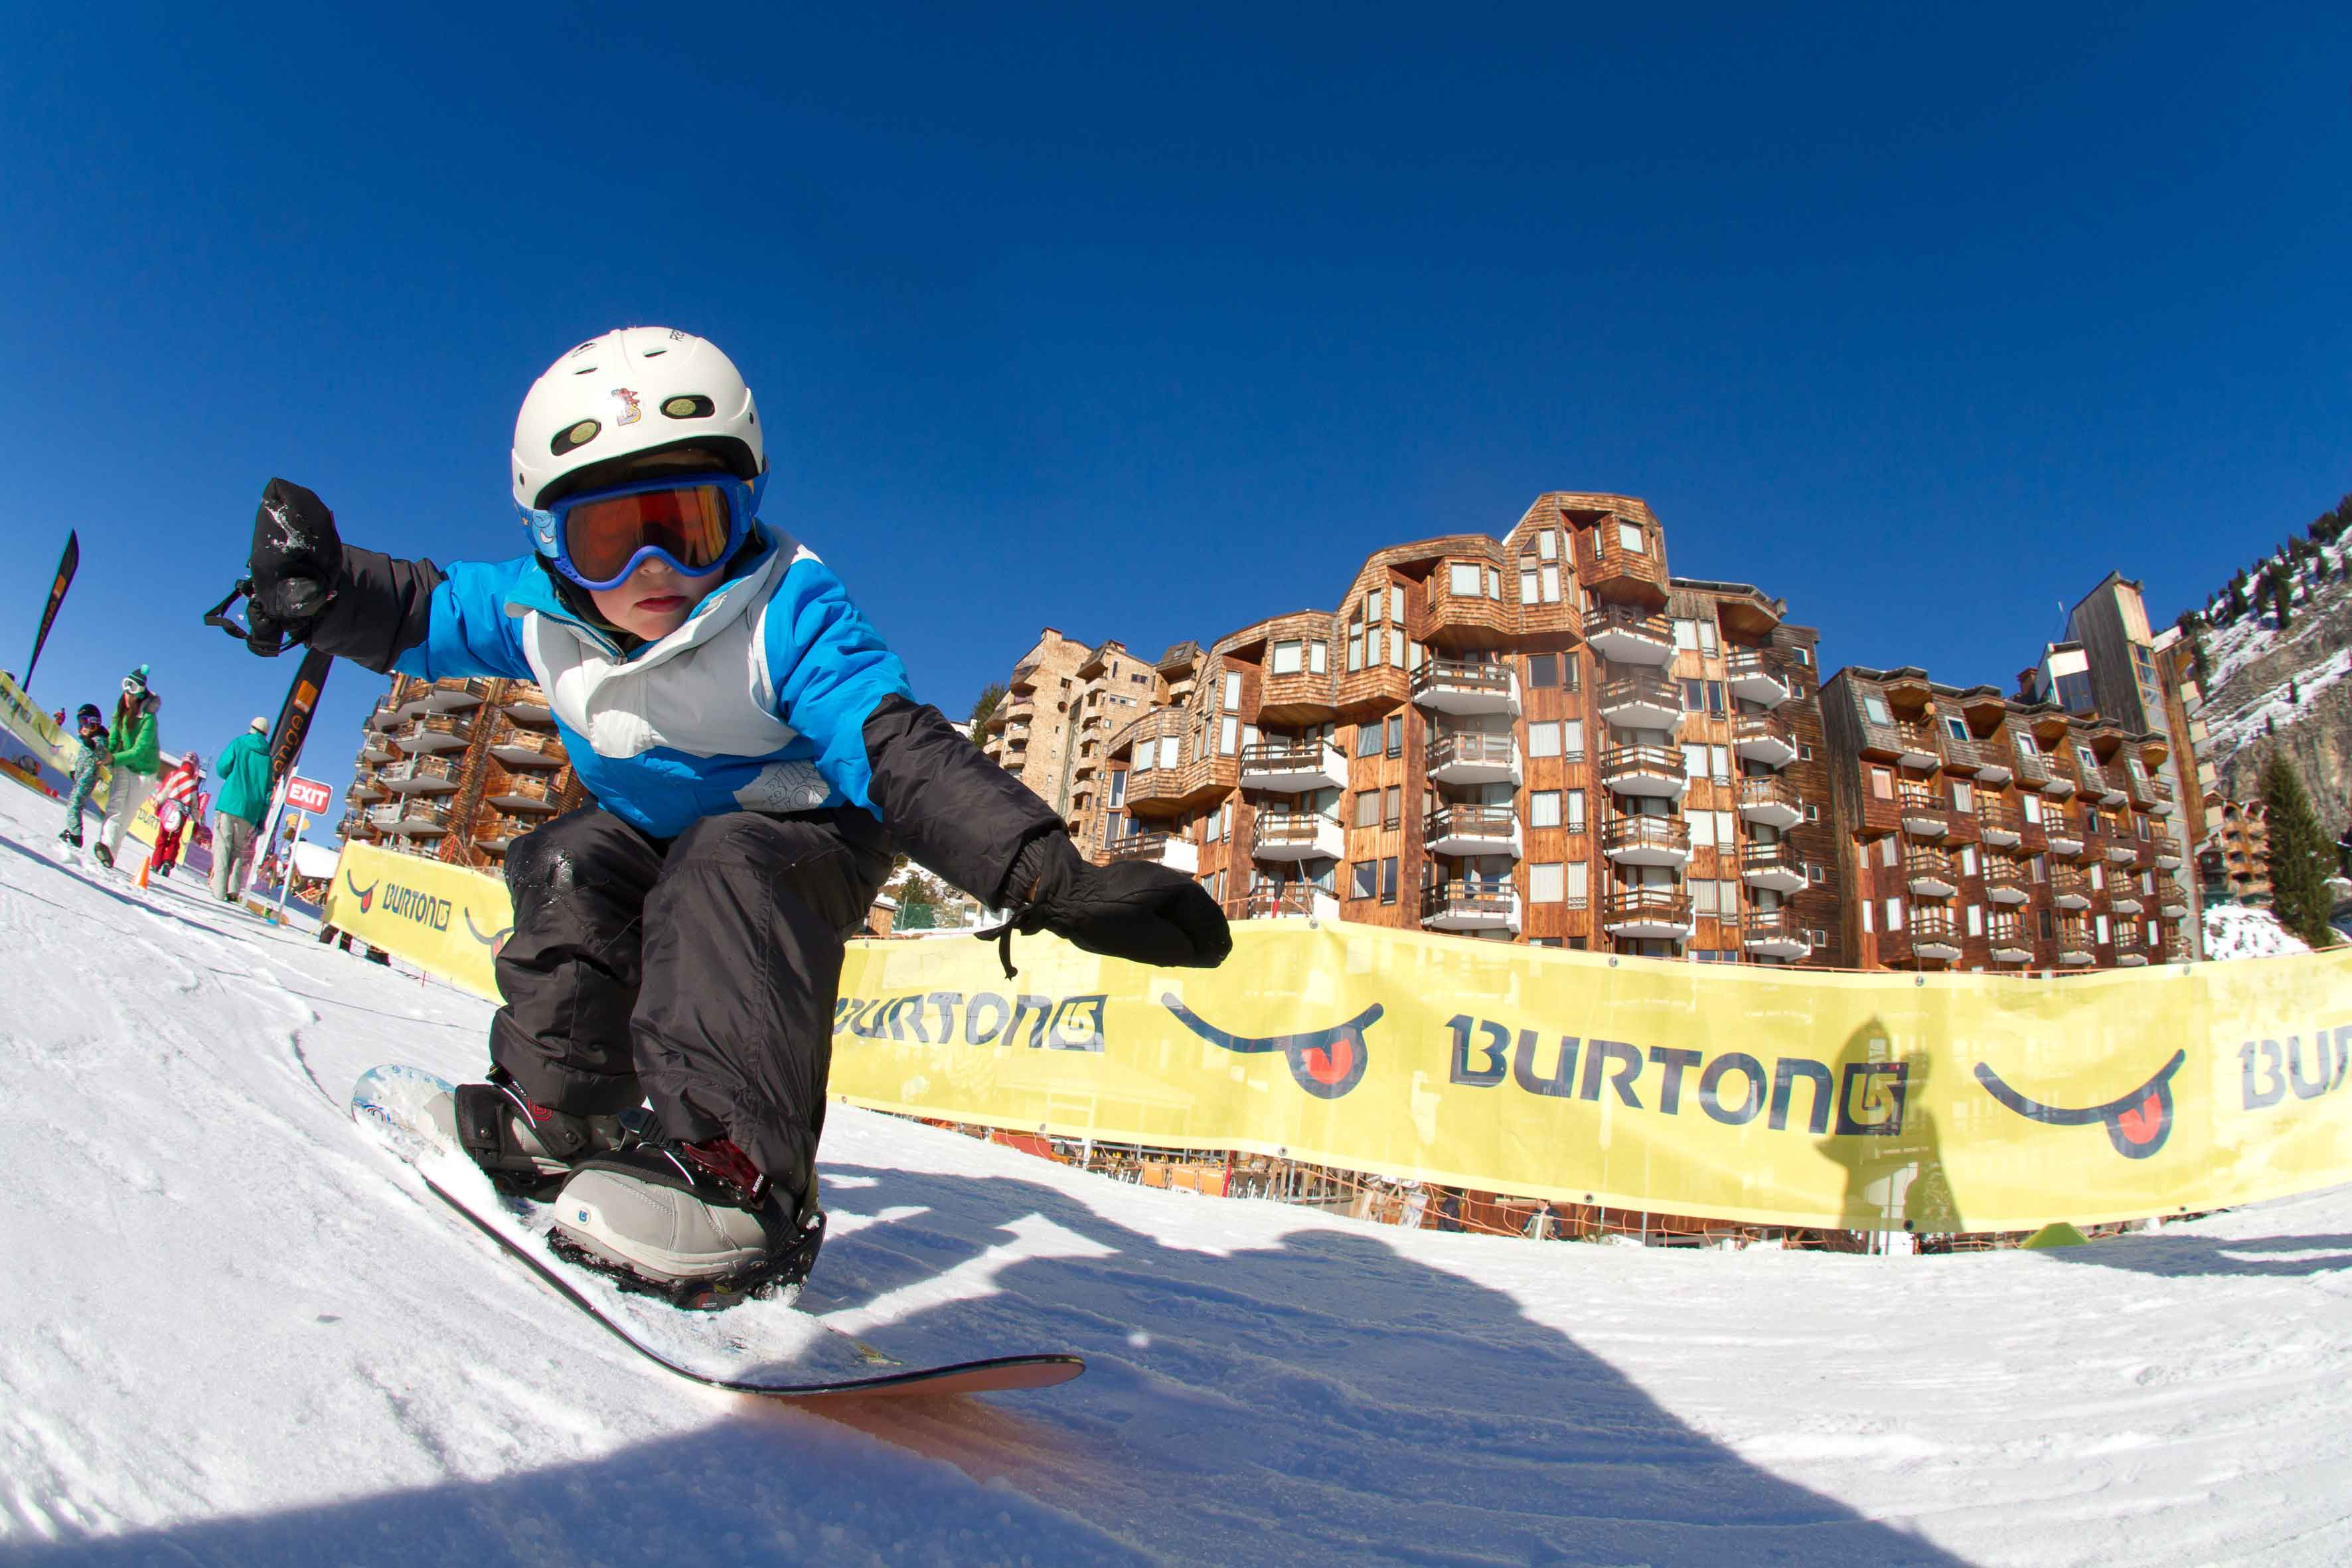 Learning to snowboard in family friendly Avoriaz